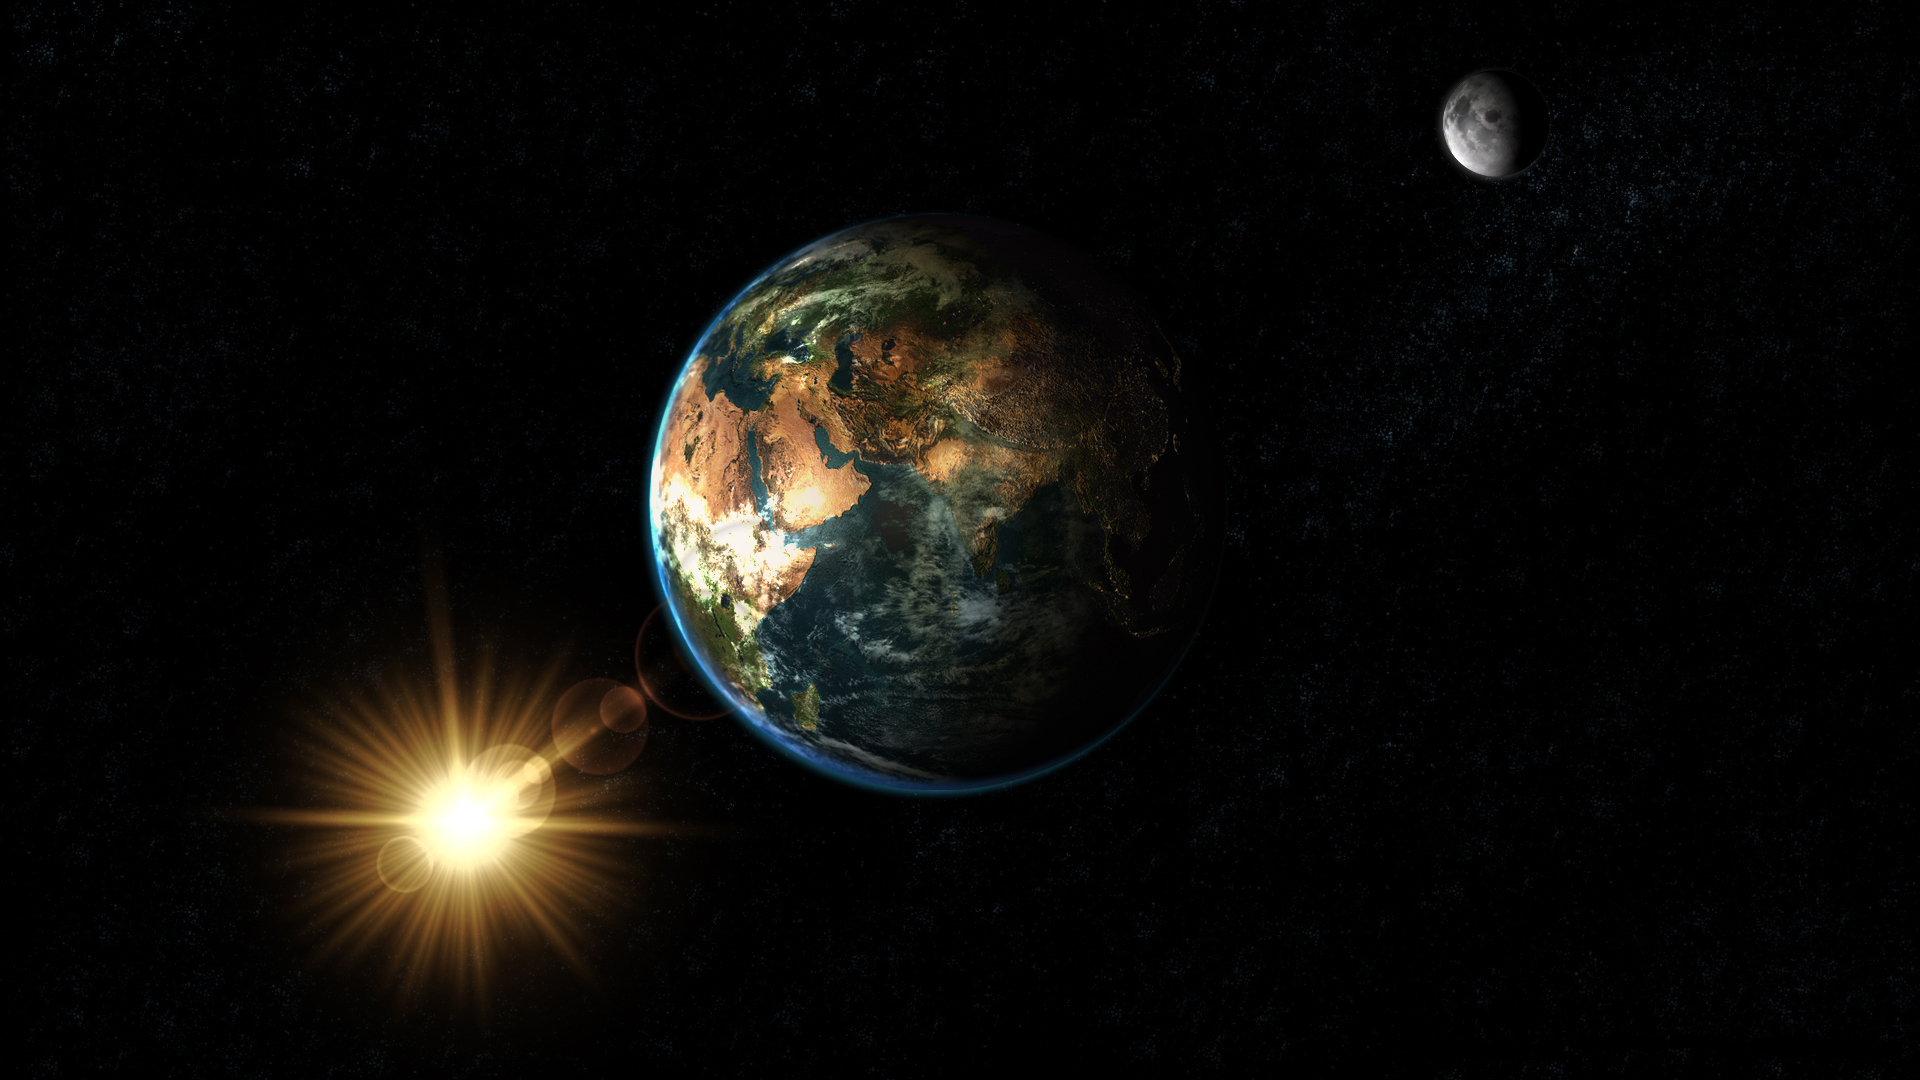 Sun Moon and Earth NASA   Pics about space 1920x1080